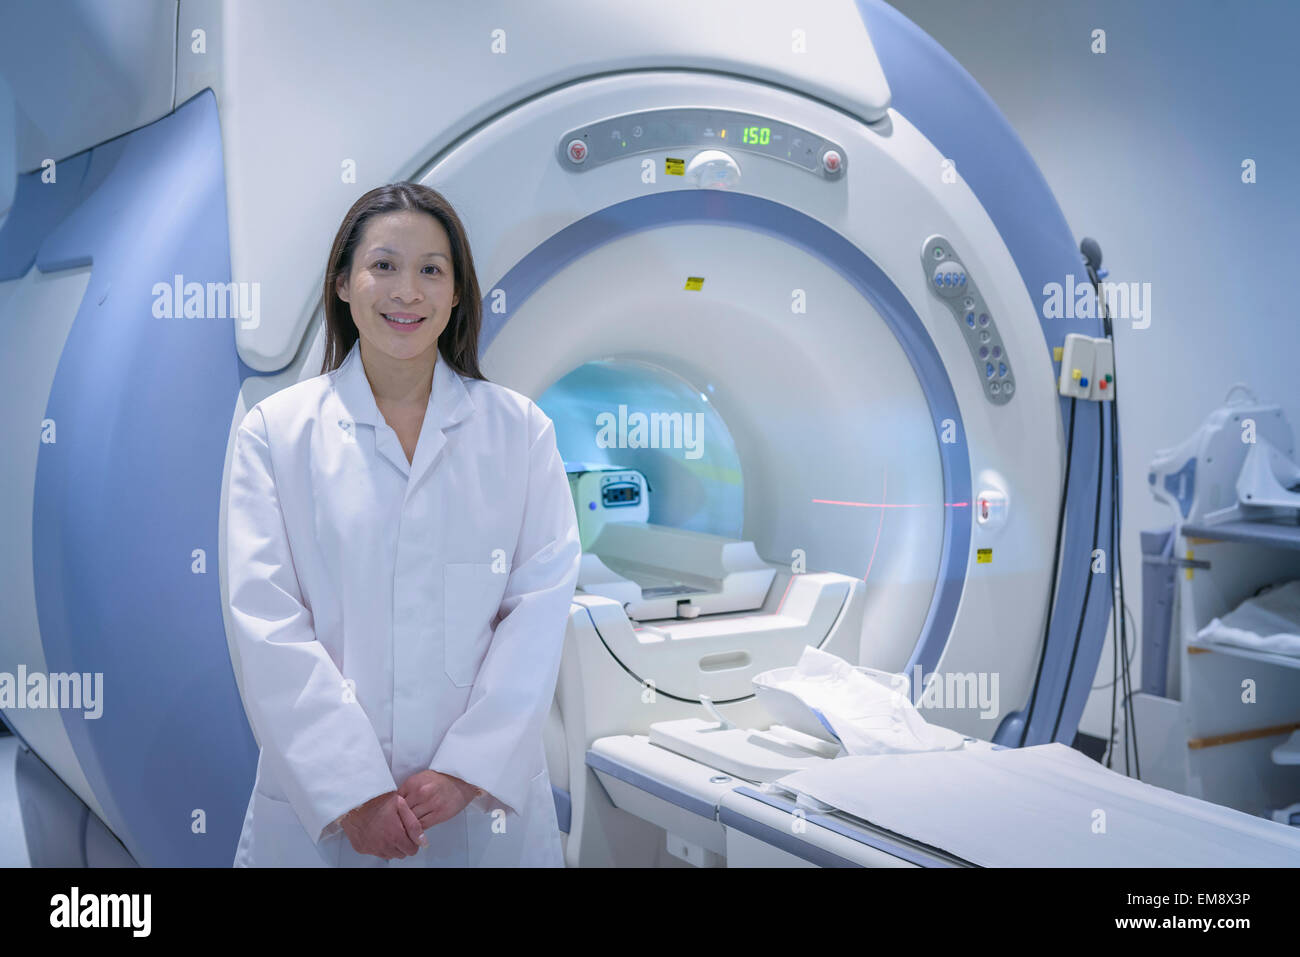 Doctor with Magnetic Resonance Imaging (MRI) scanner, portrait - Stock Image